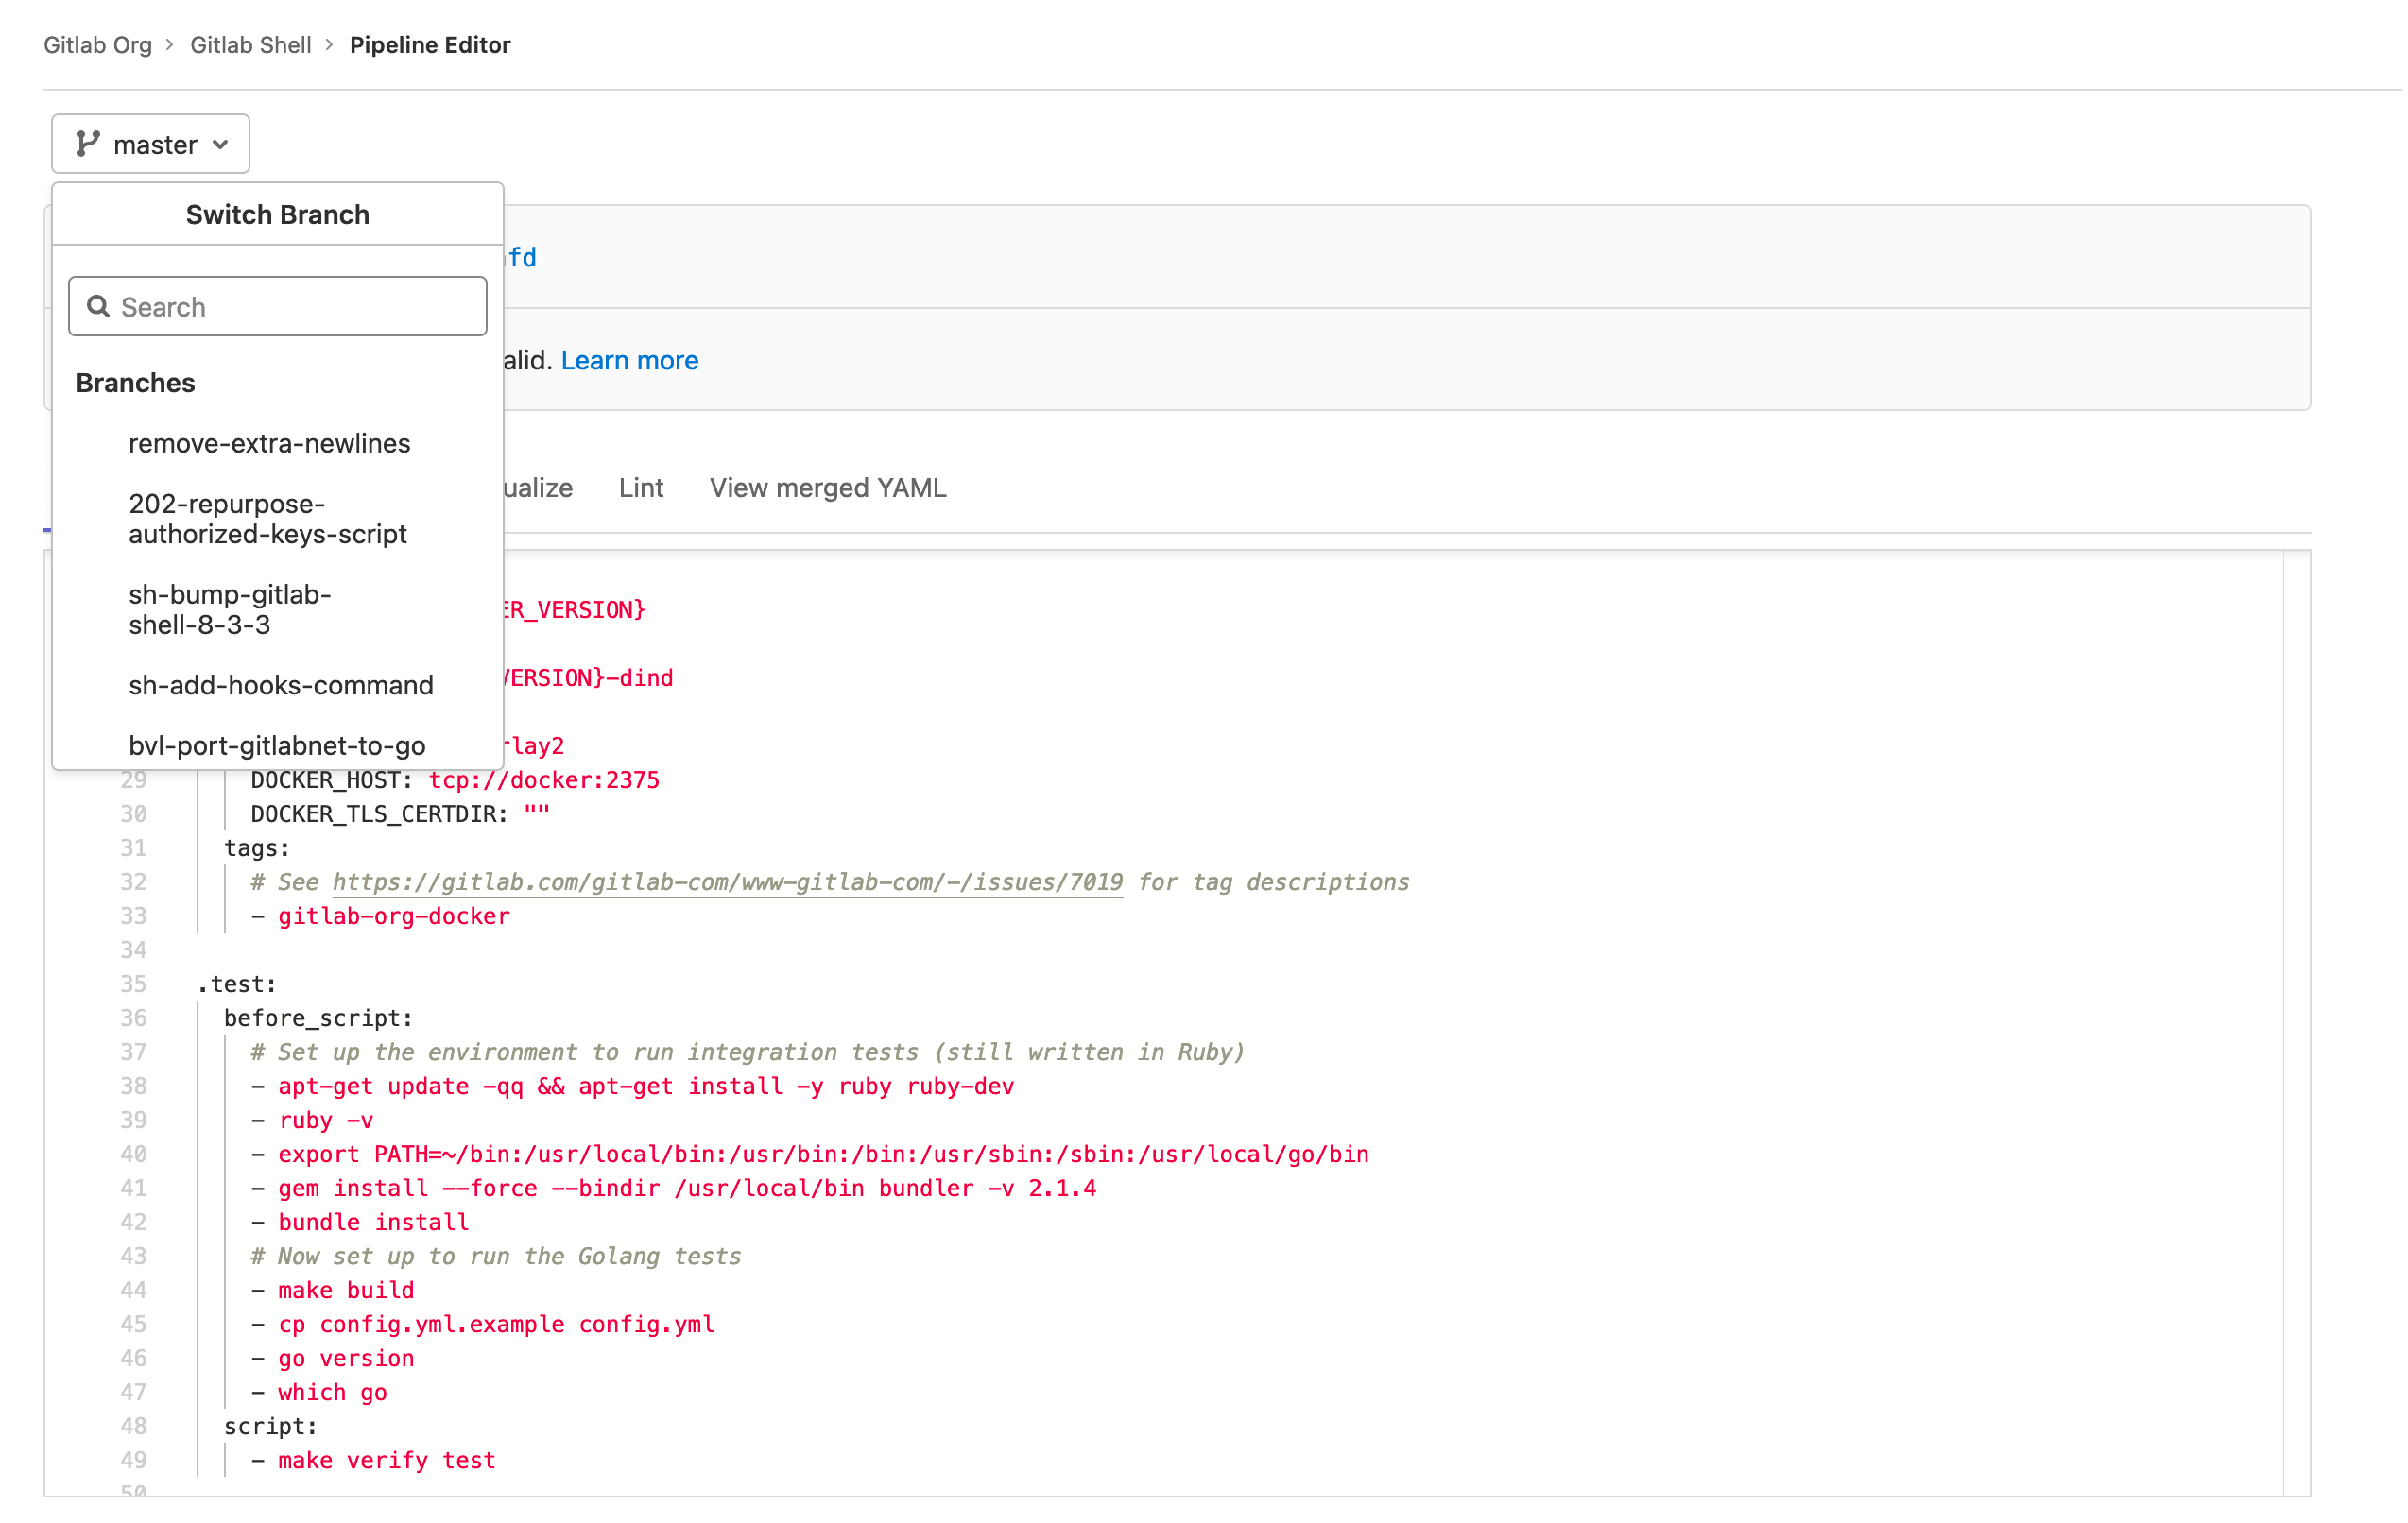 Work from branches in the Pipeline Editor